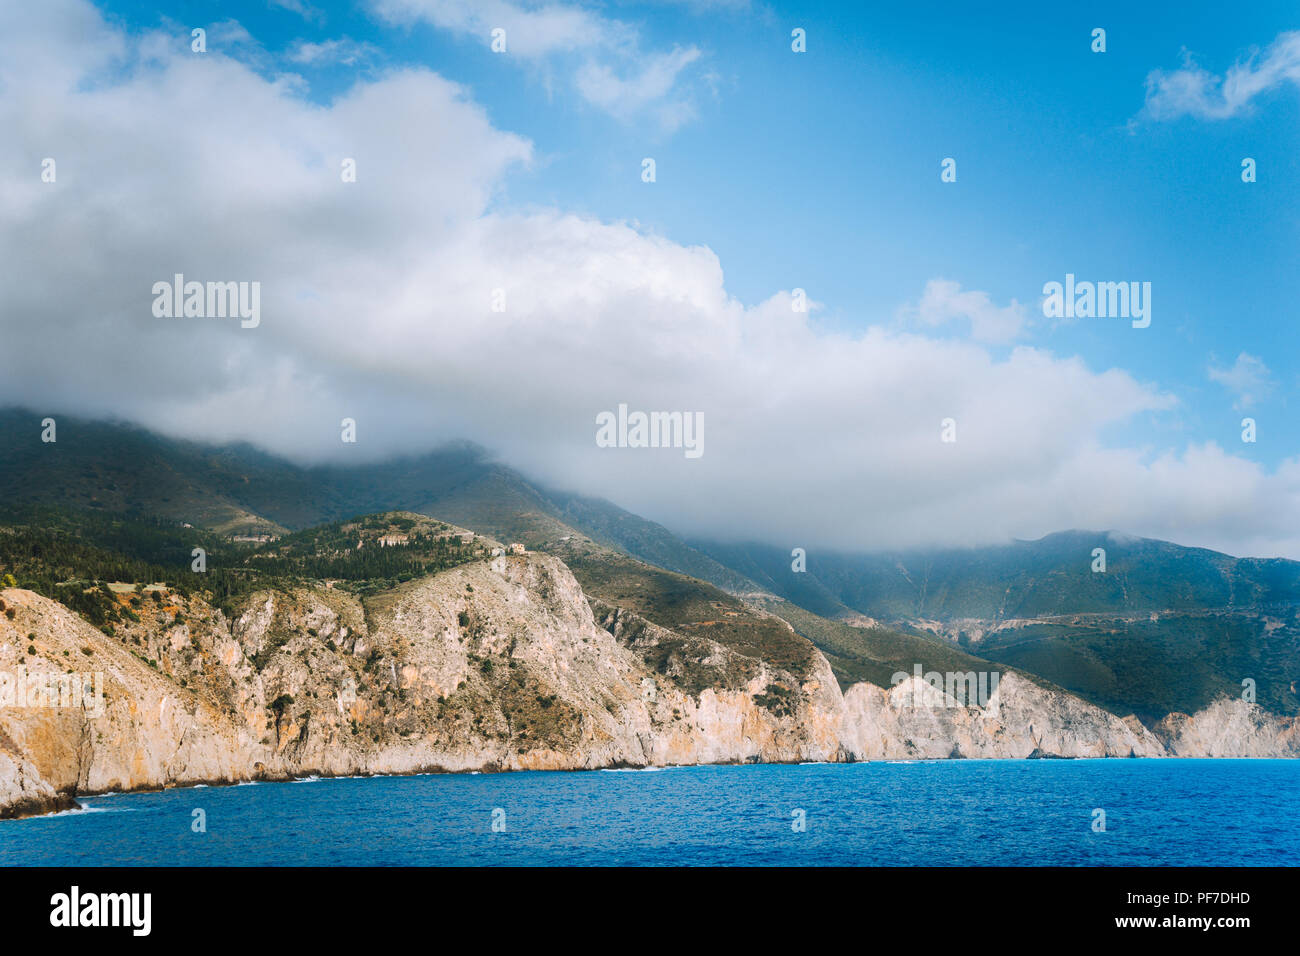 Picturesque rocky coastline on Kefalonia island. Amazing landscape in soft light with cloudscape - Stock Image